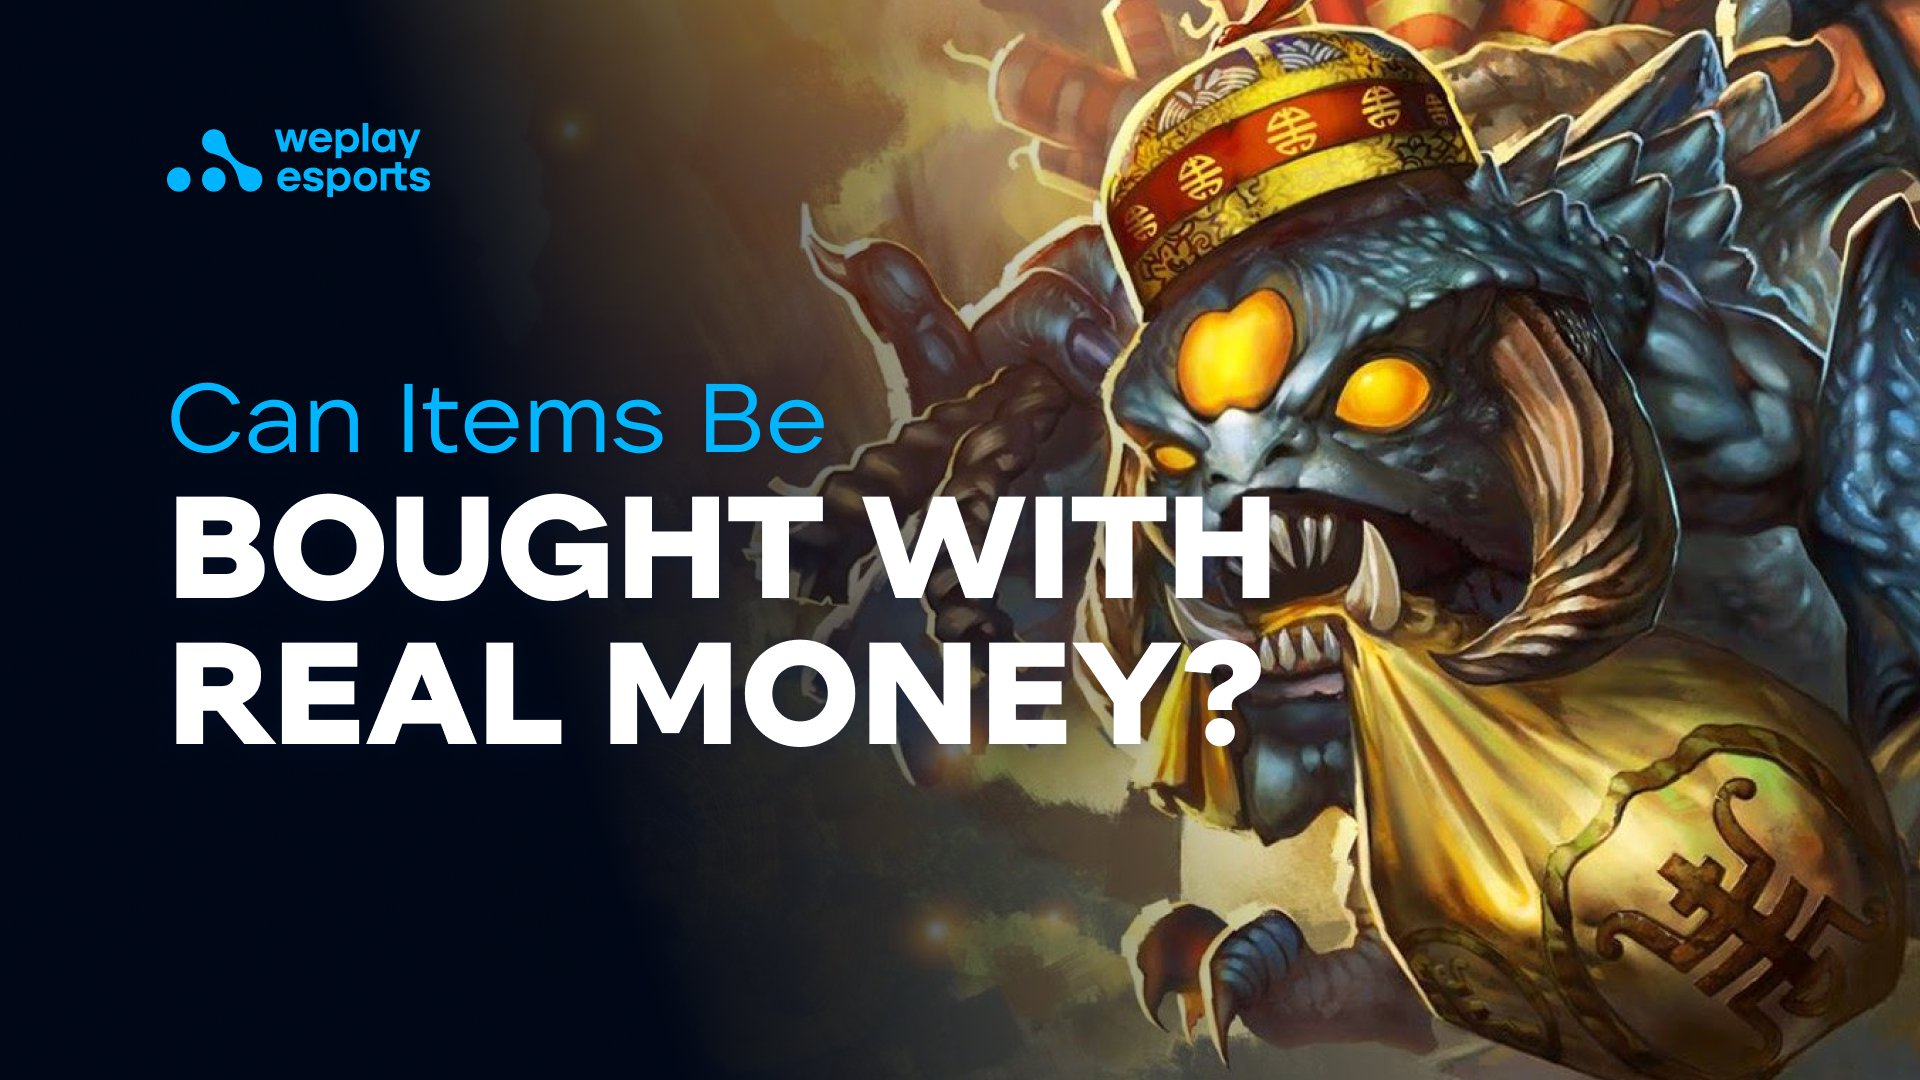 Can Items Be Bought With Real Money?